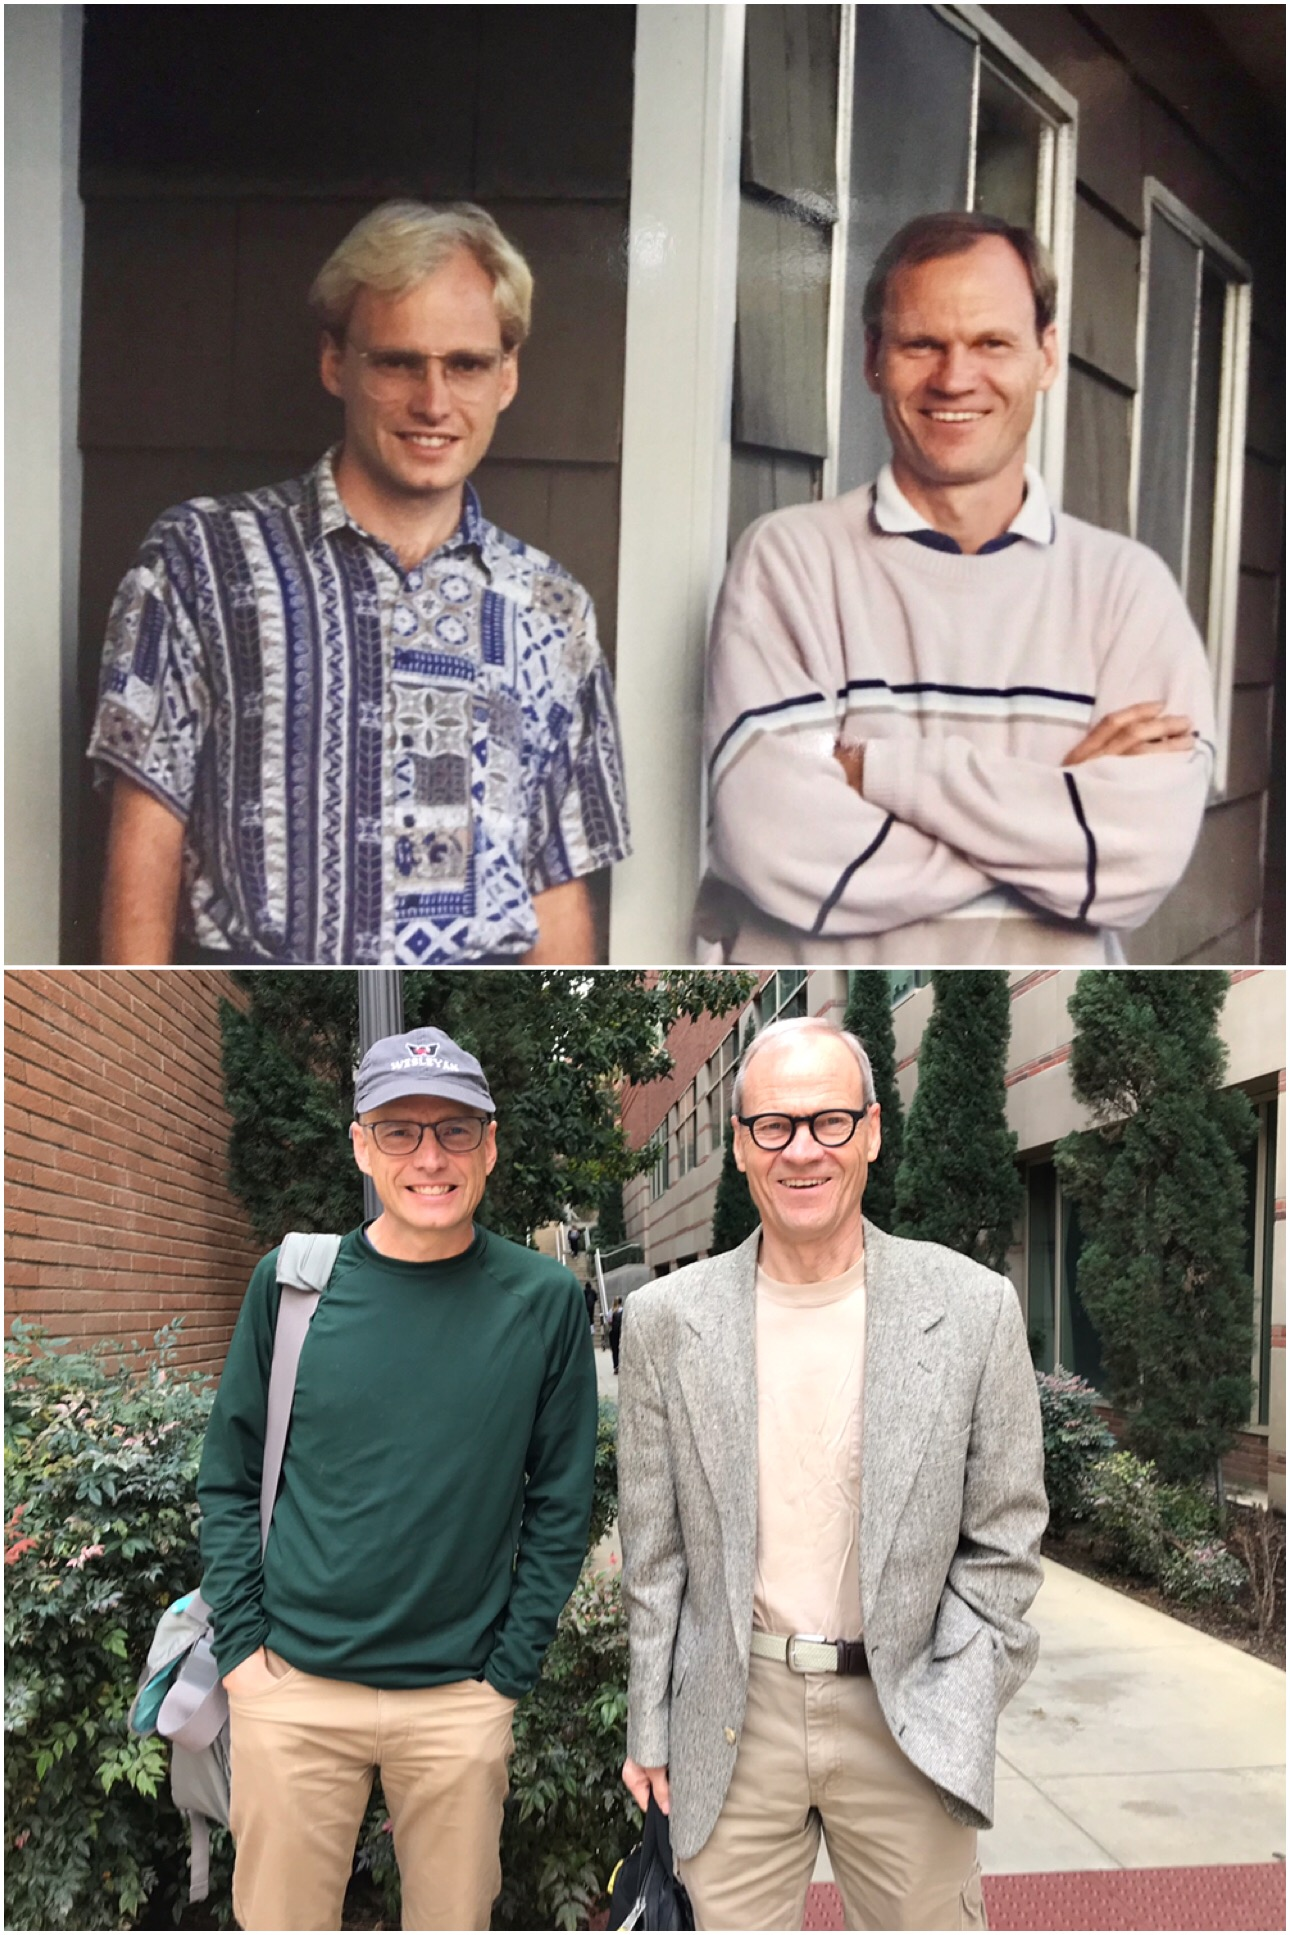 25 years apart. Photo courtesy of Peter Petersen.